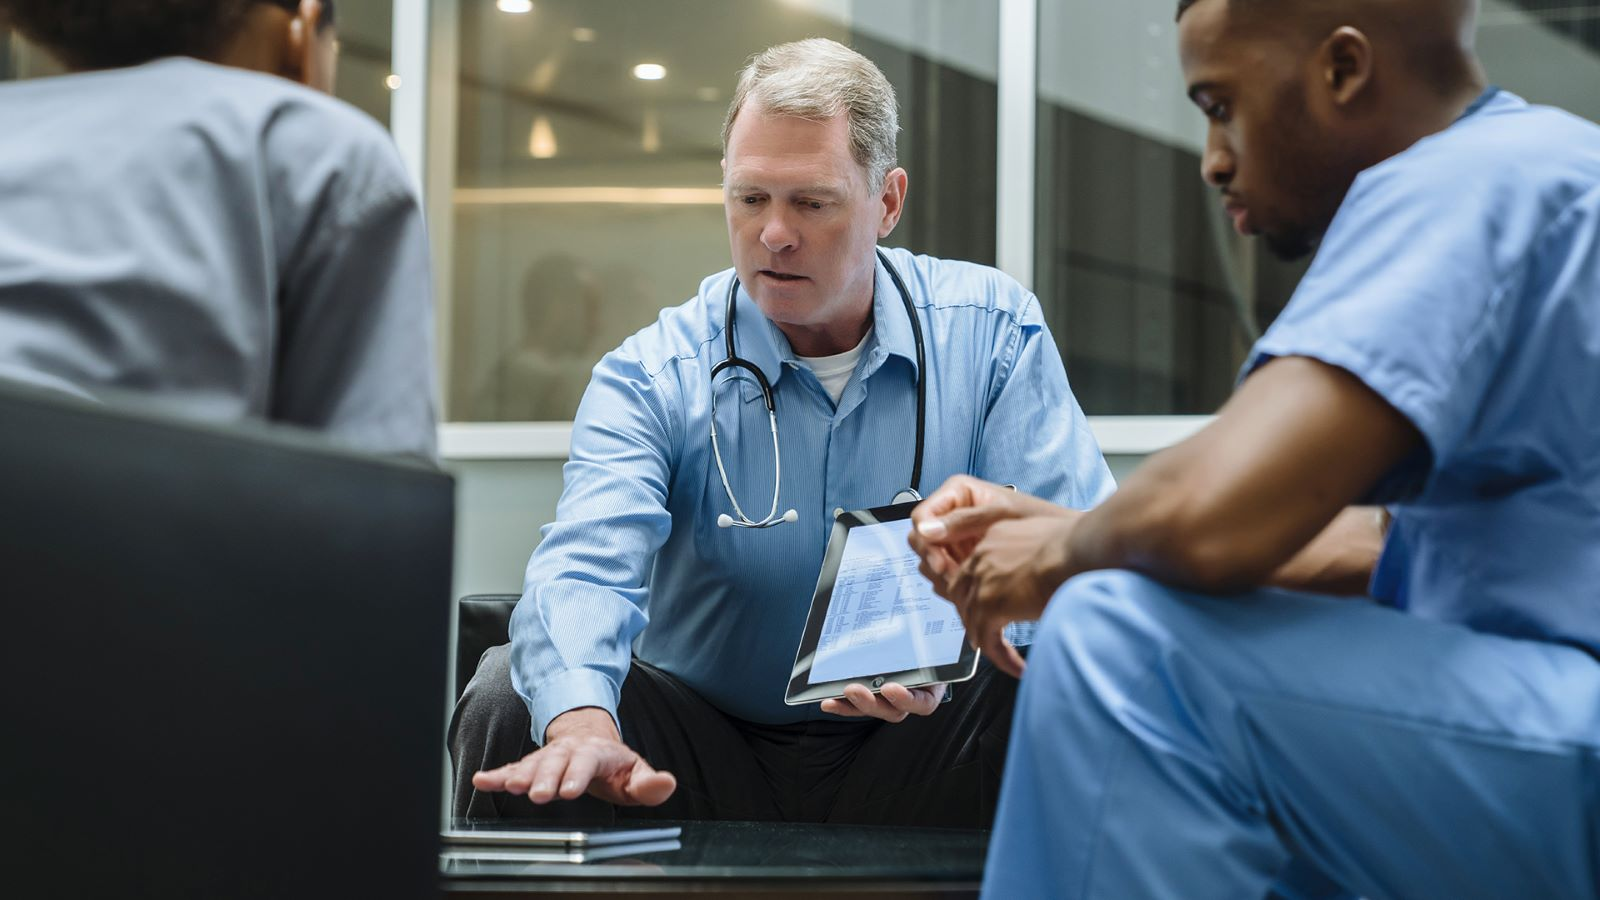 Doctor using iPad for NHS login authentication